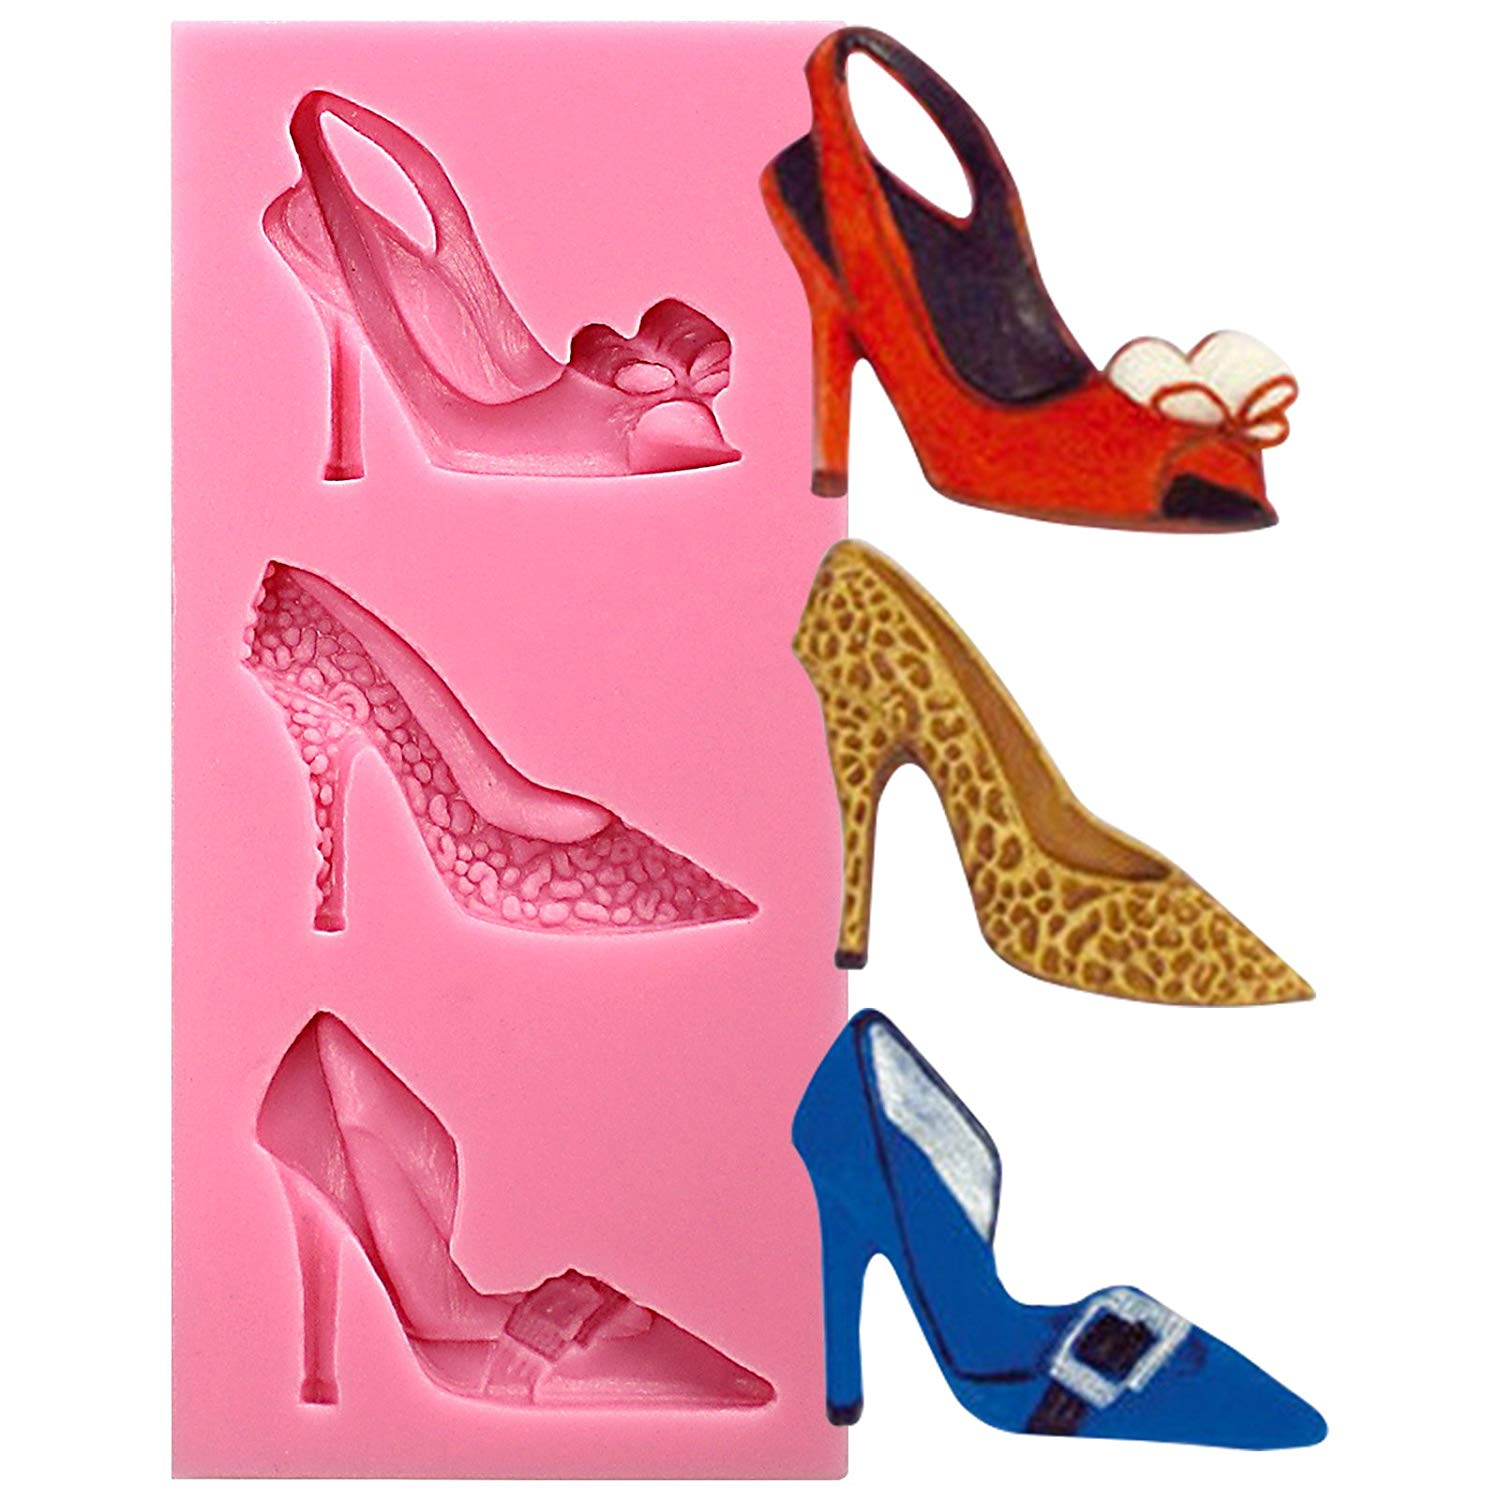 High Heel Shoes Fondant Silicone Mold